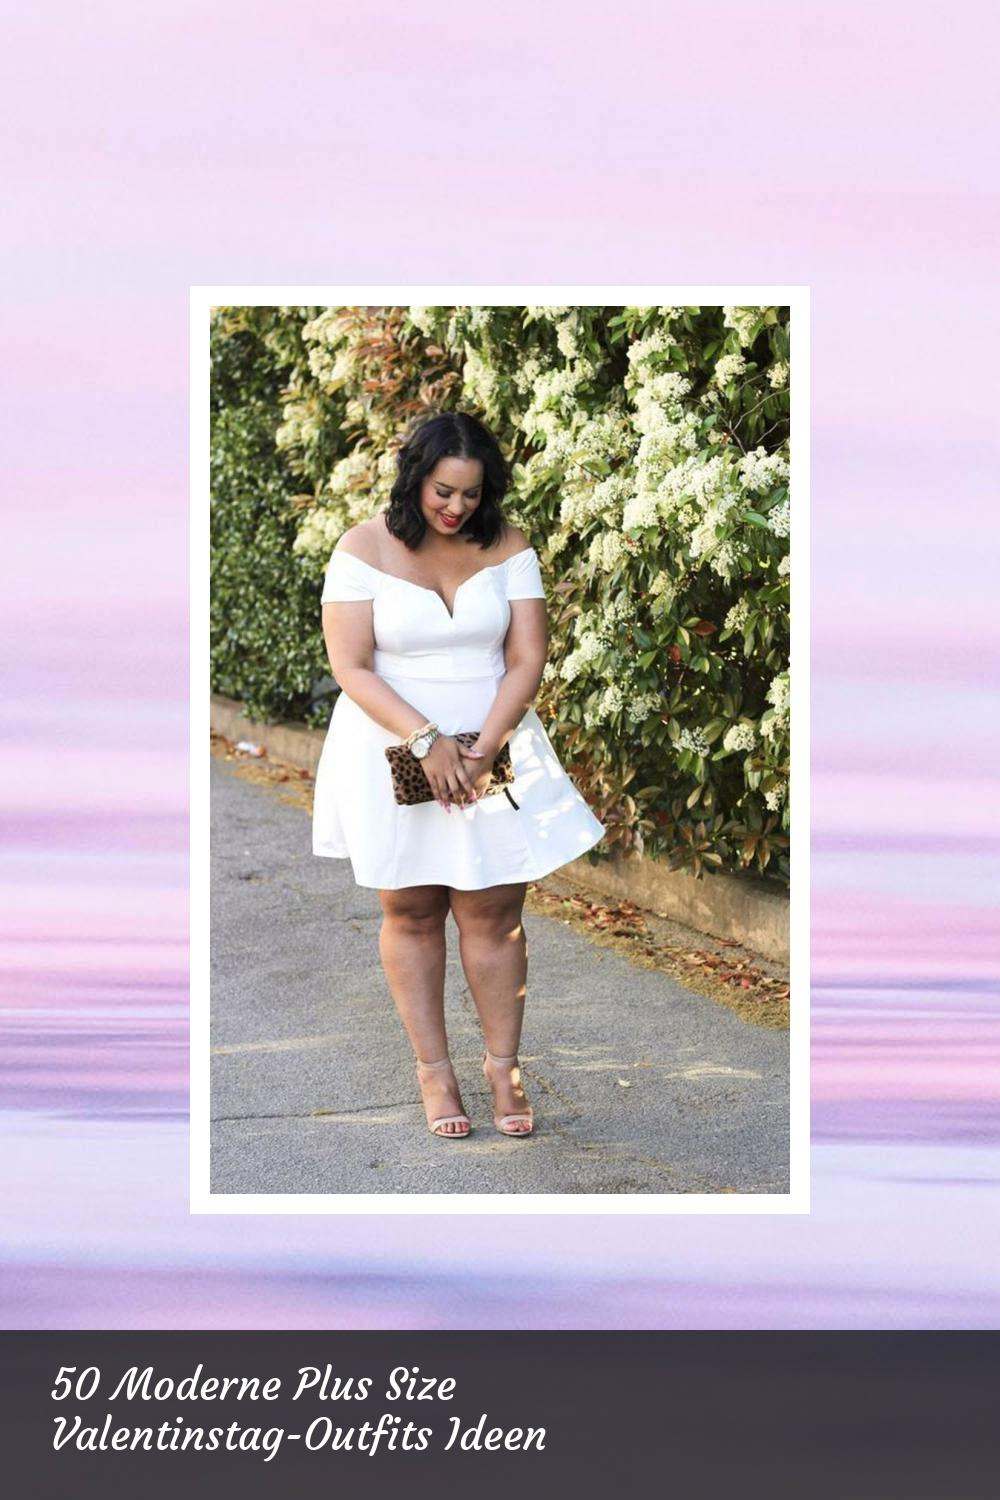 50 Moderne Plus Size Valentinstag-Outfits Ideen 40